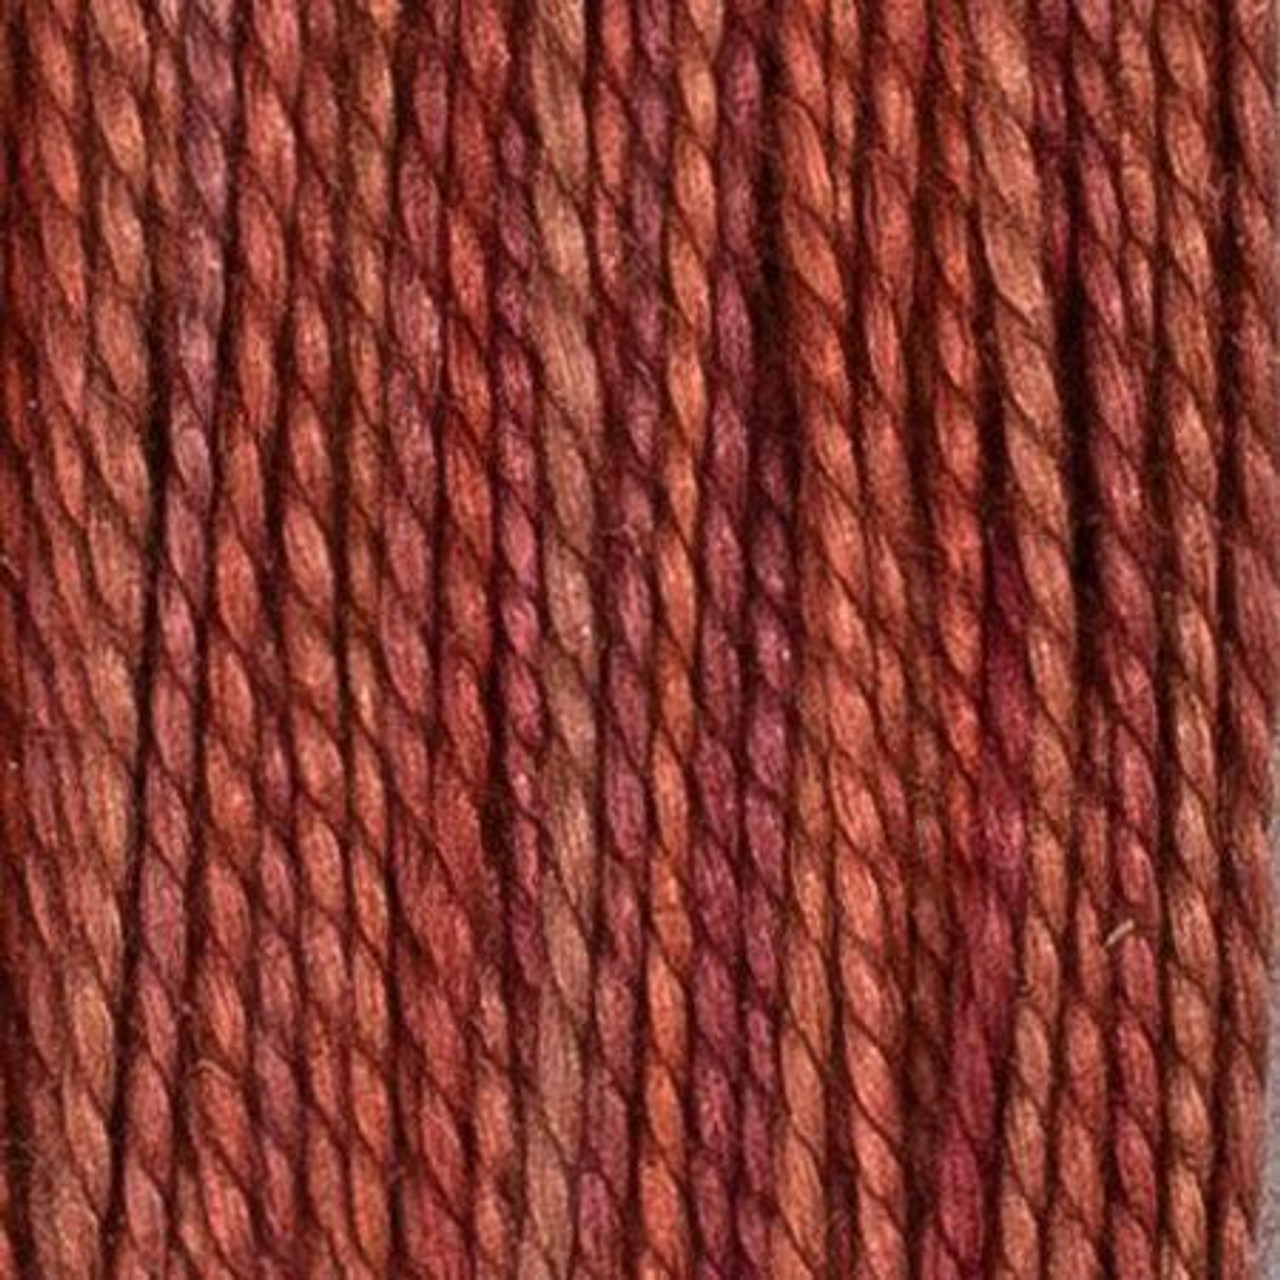 House of Embroidery : 8wt Perle Cotton - Cloves (55A)